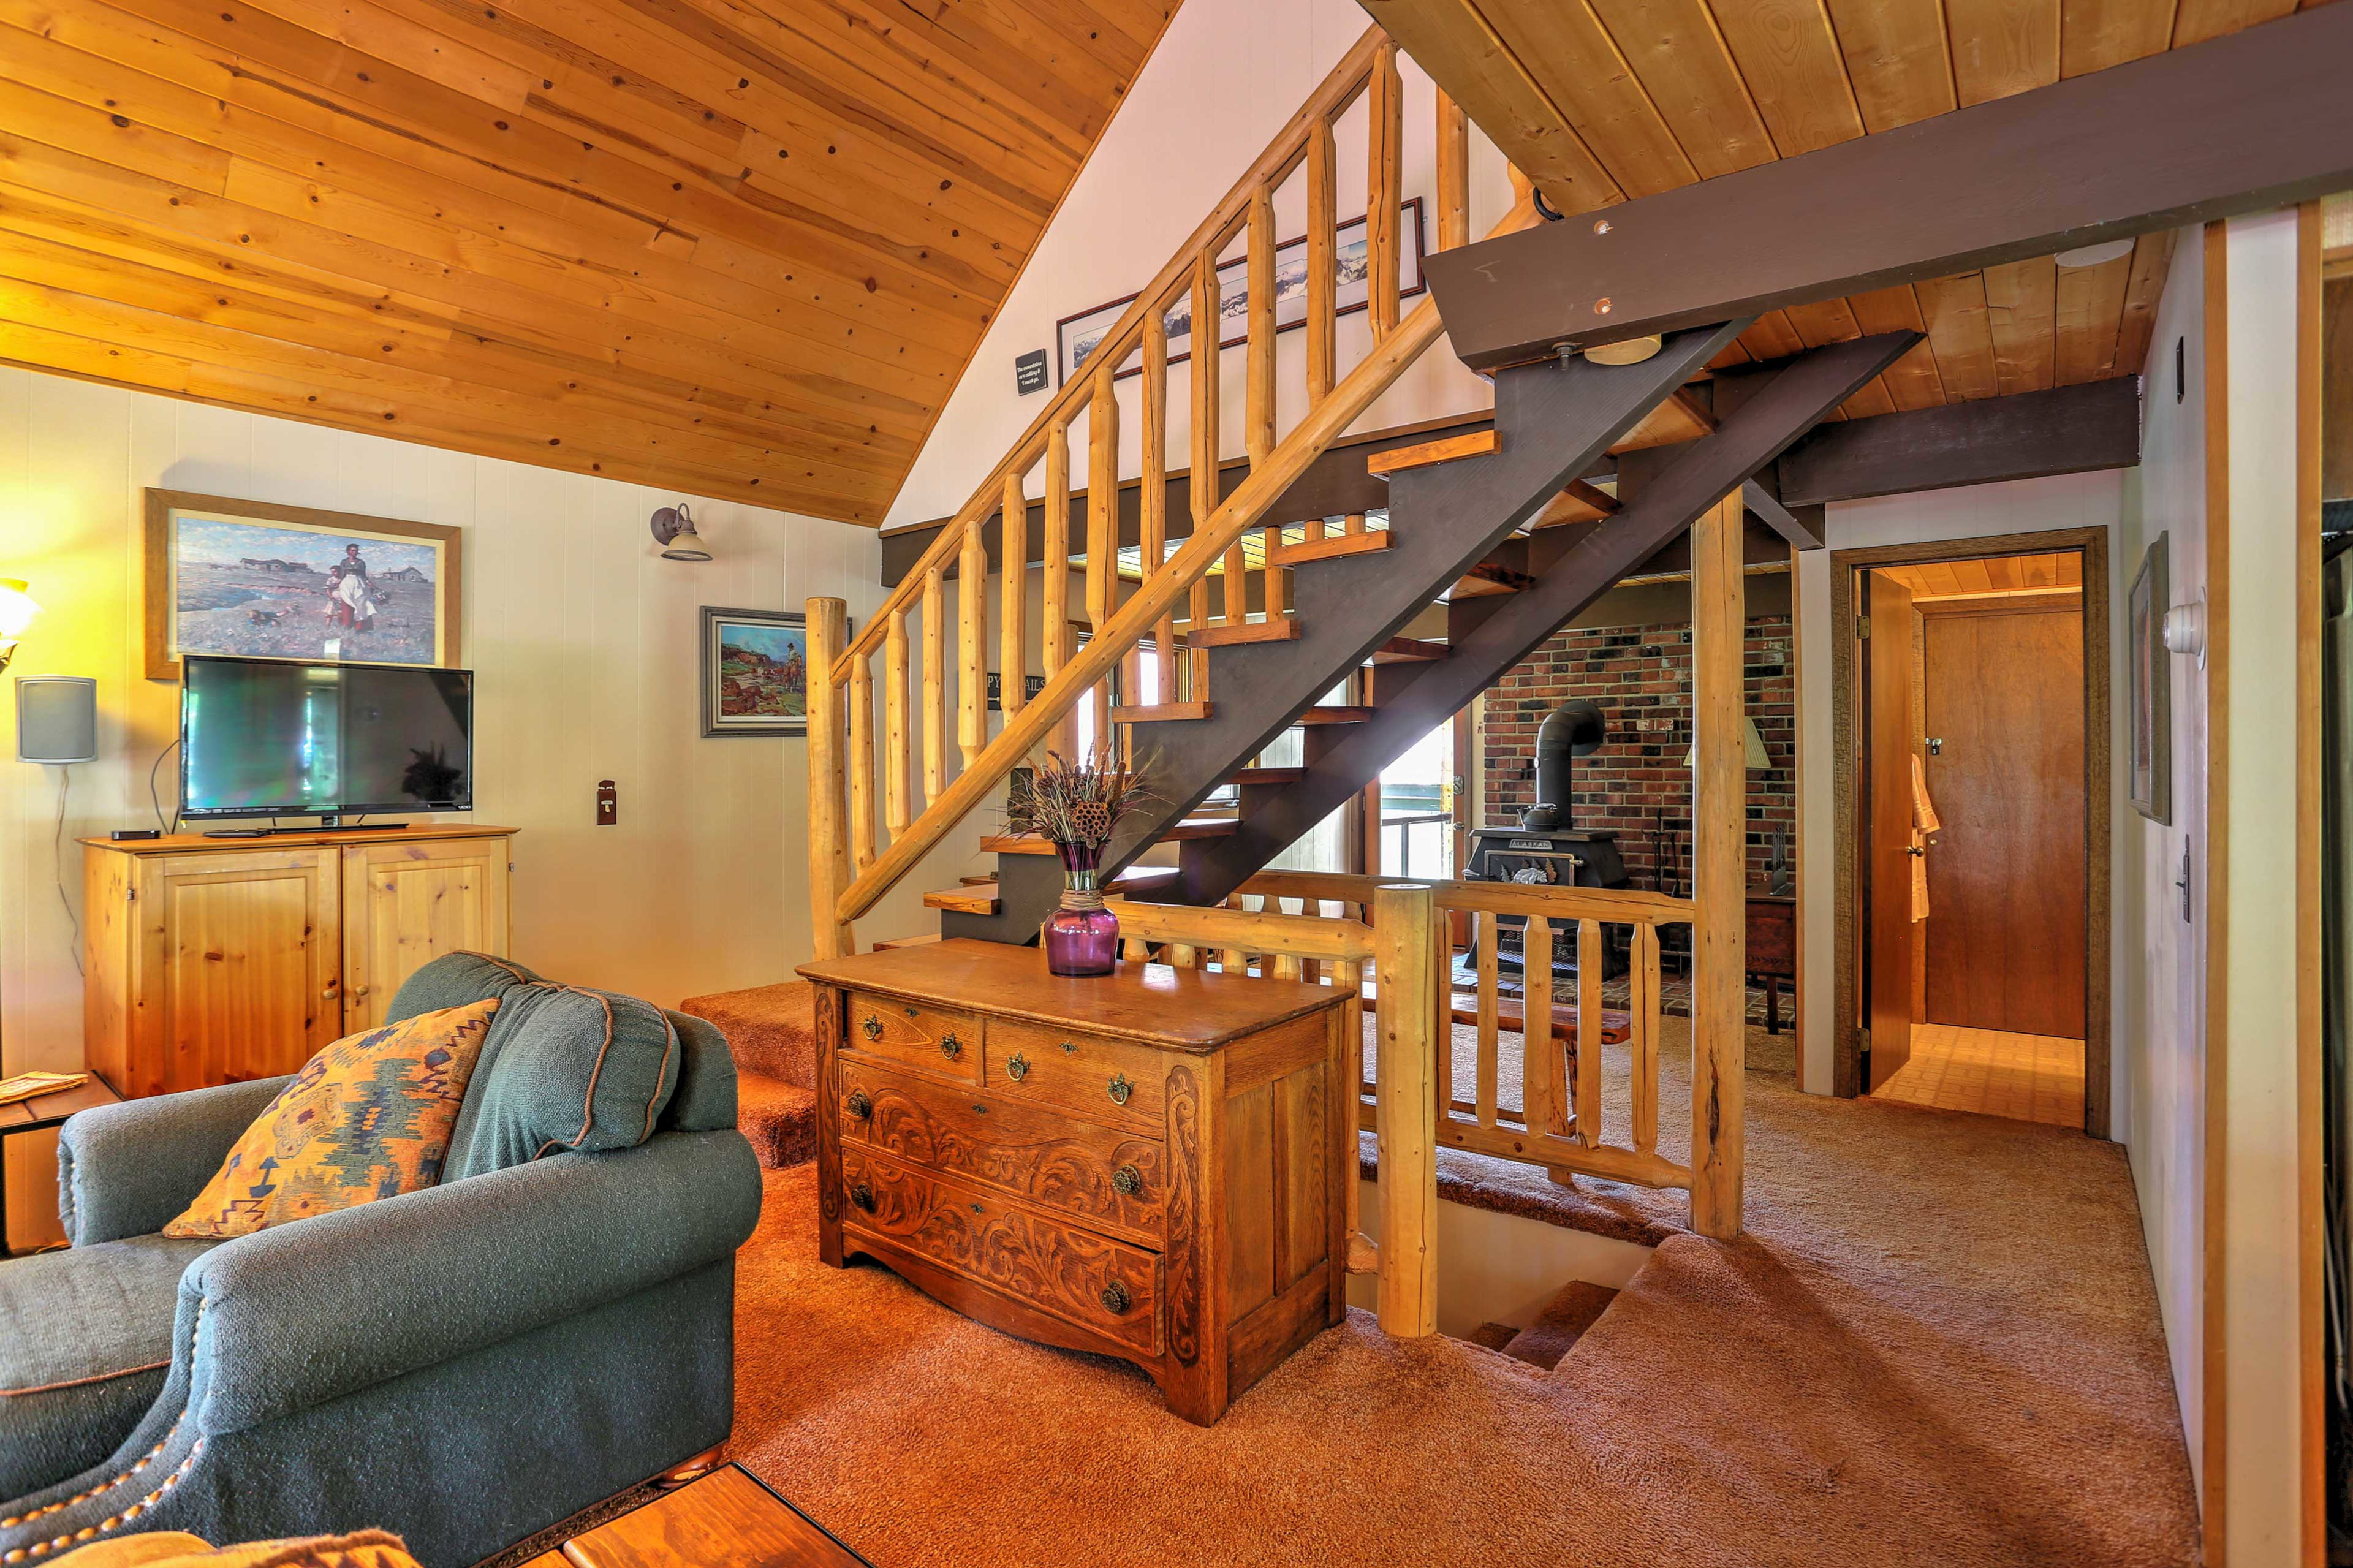 The cozy interior has a rustic aesthetic.